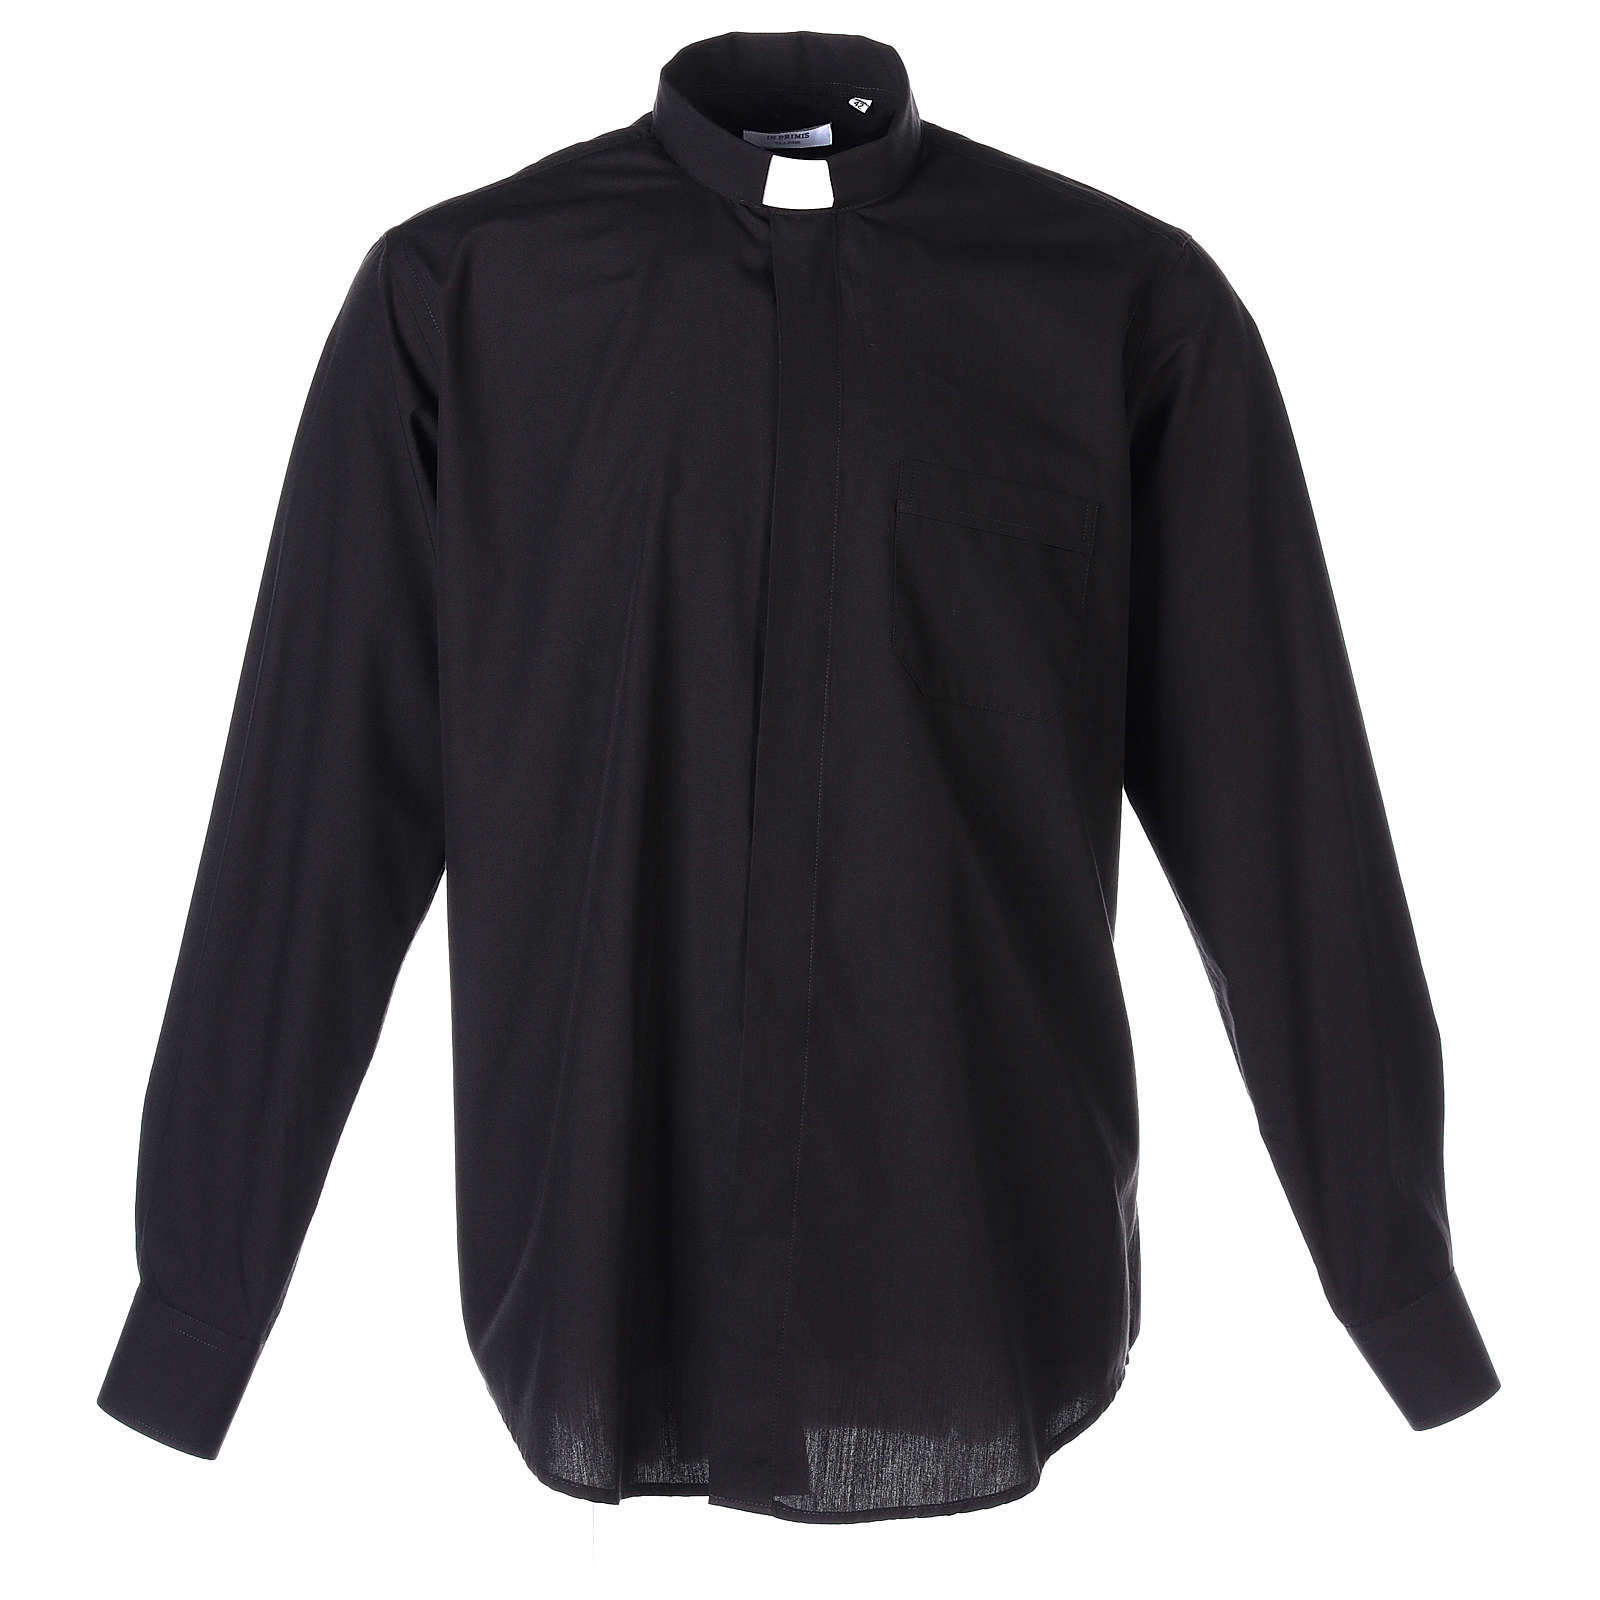 Long-sleeved clergy shirt in black cotton blend In Primis 4